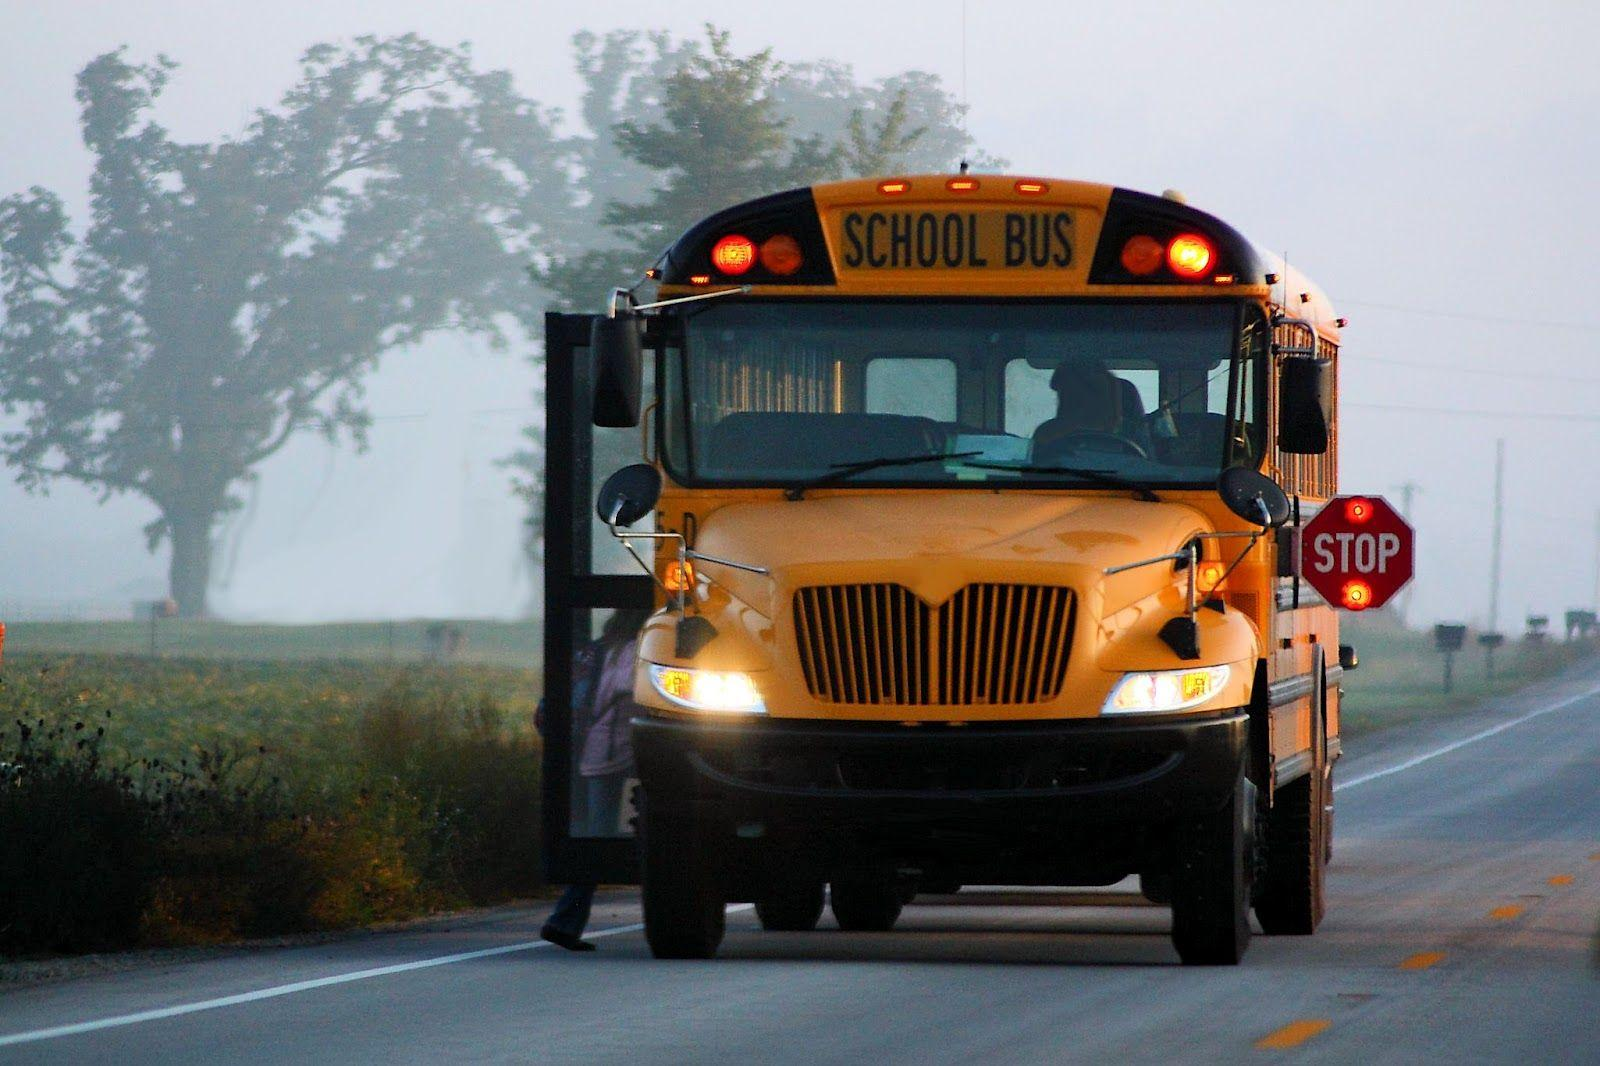 Wallpapers and pictures: School bus in the morning hd wallpapers